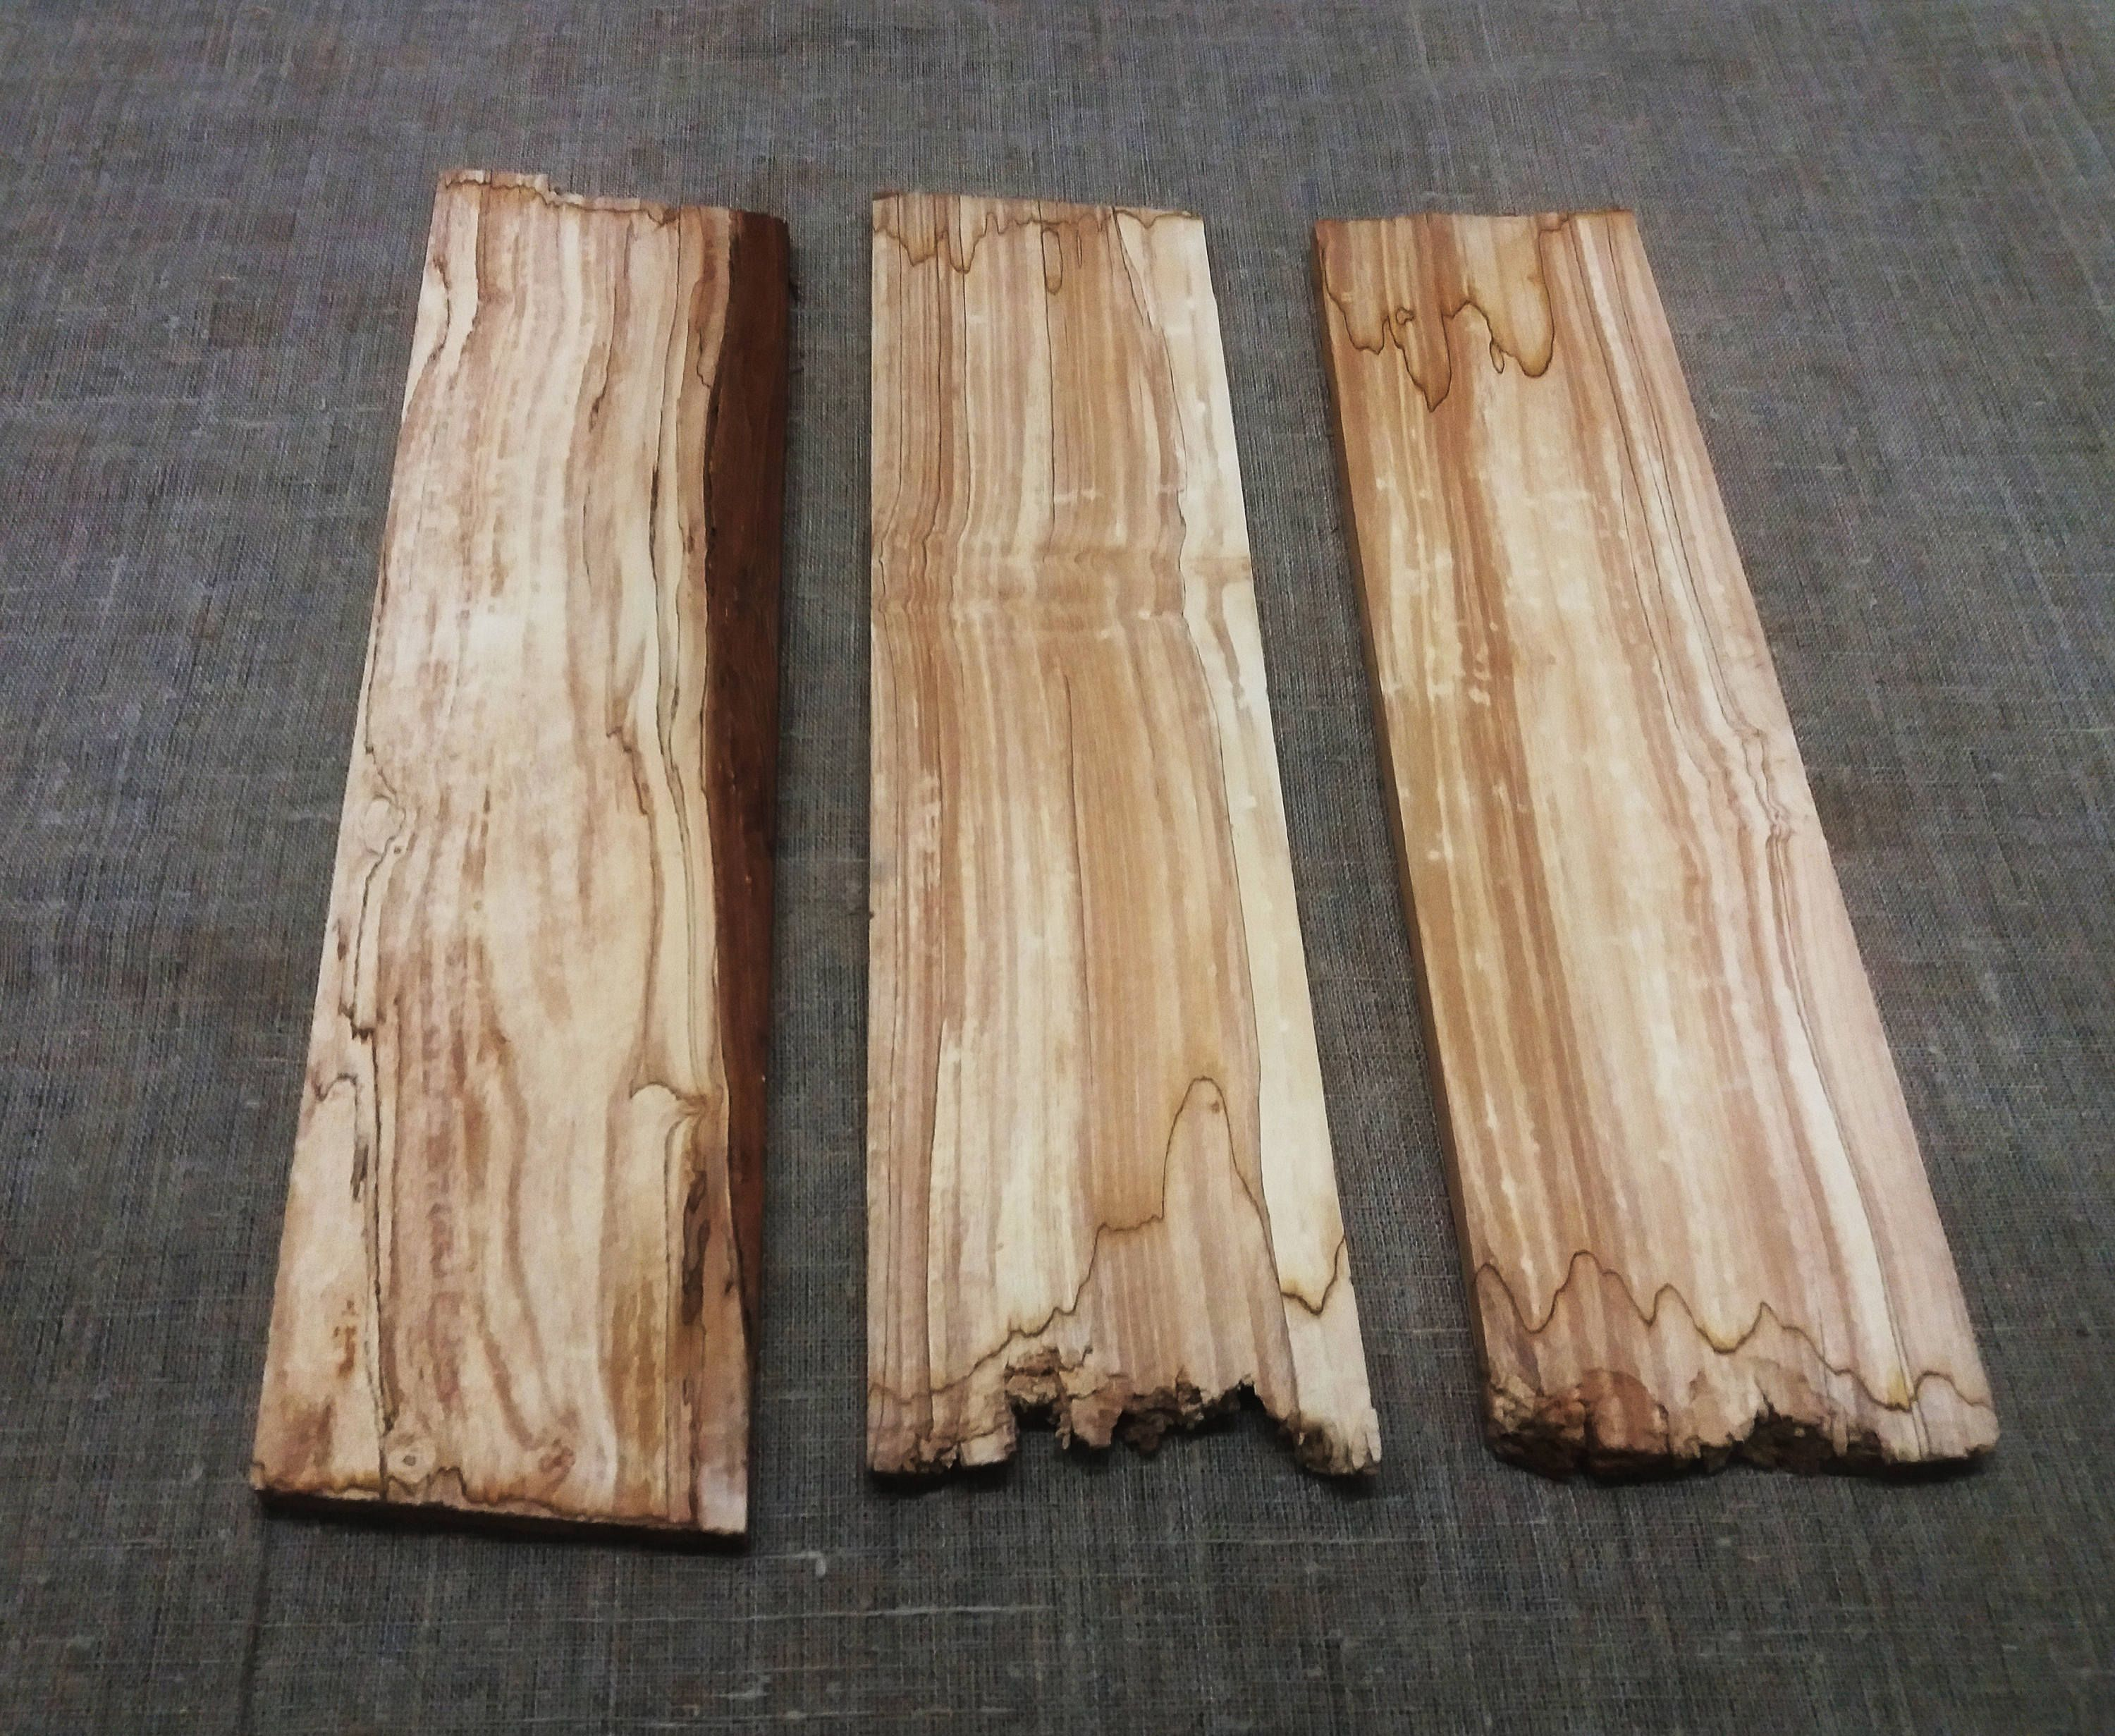 3 Weeping Willow Wood Planks Tree Core Without Bark, For